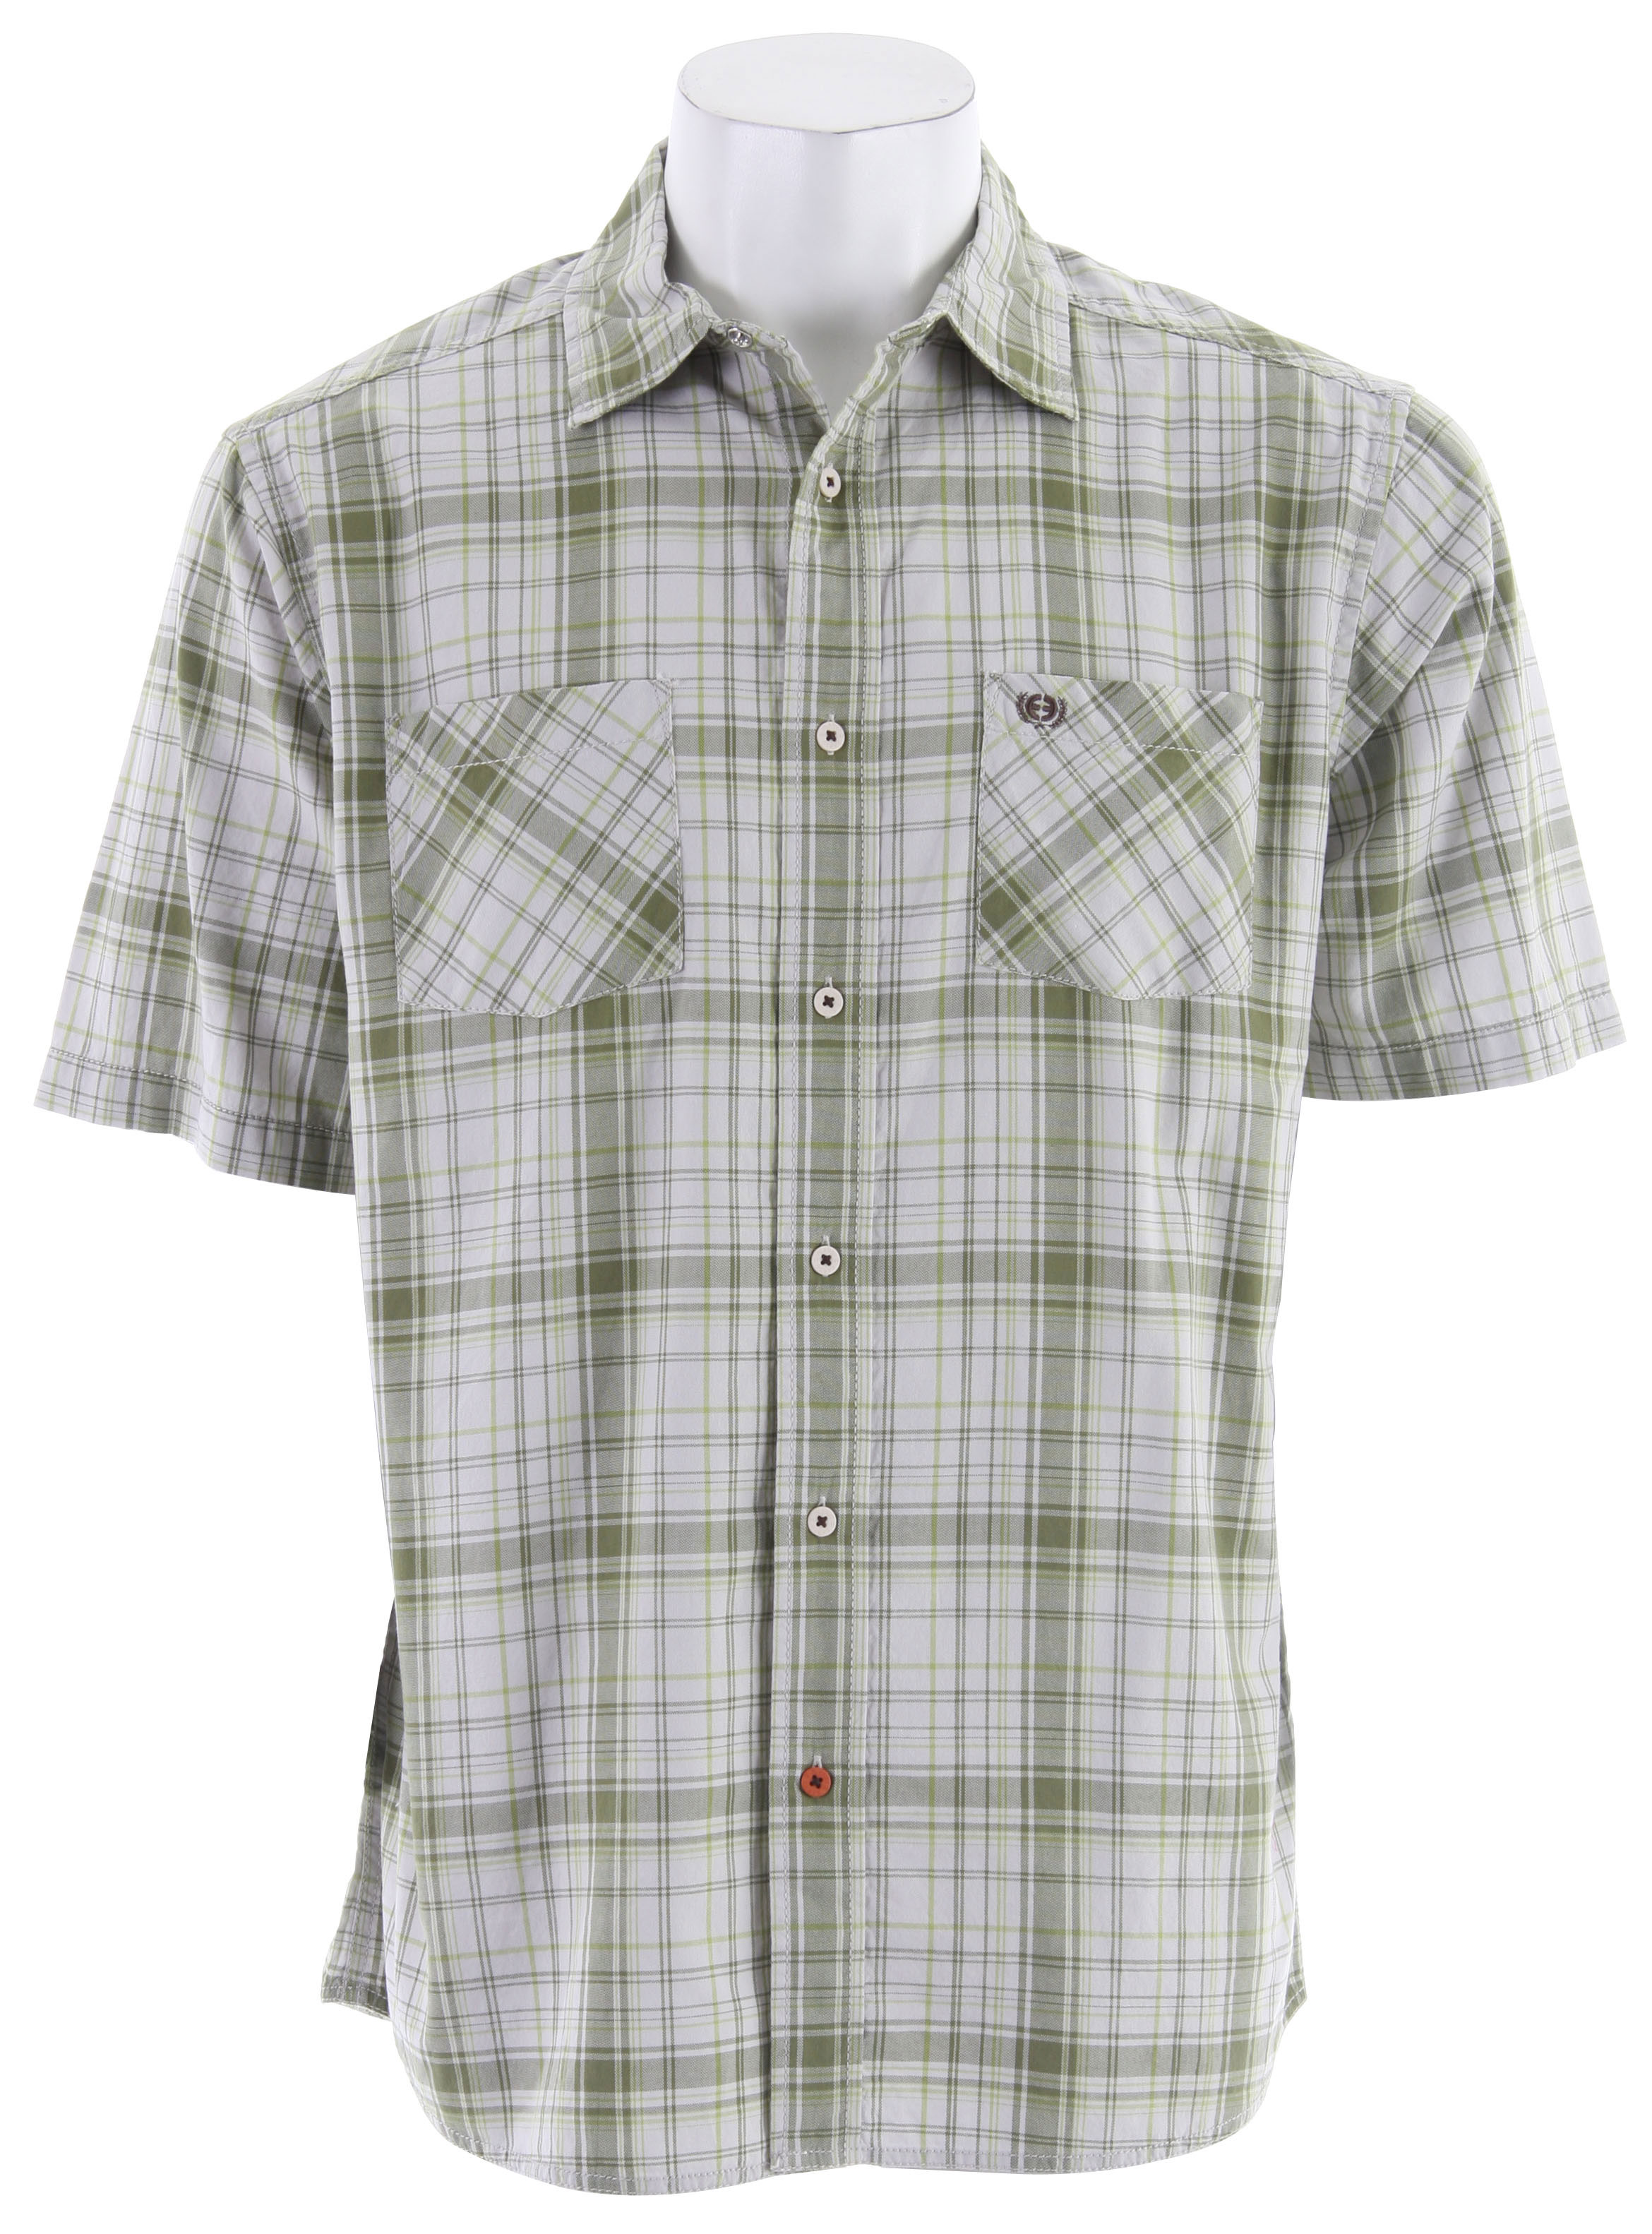 Planet Earth Collins S/S Shirt Pale Green - $20.89